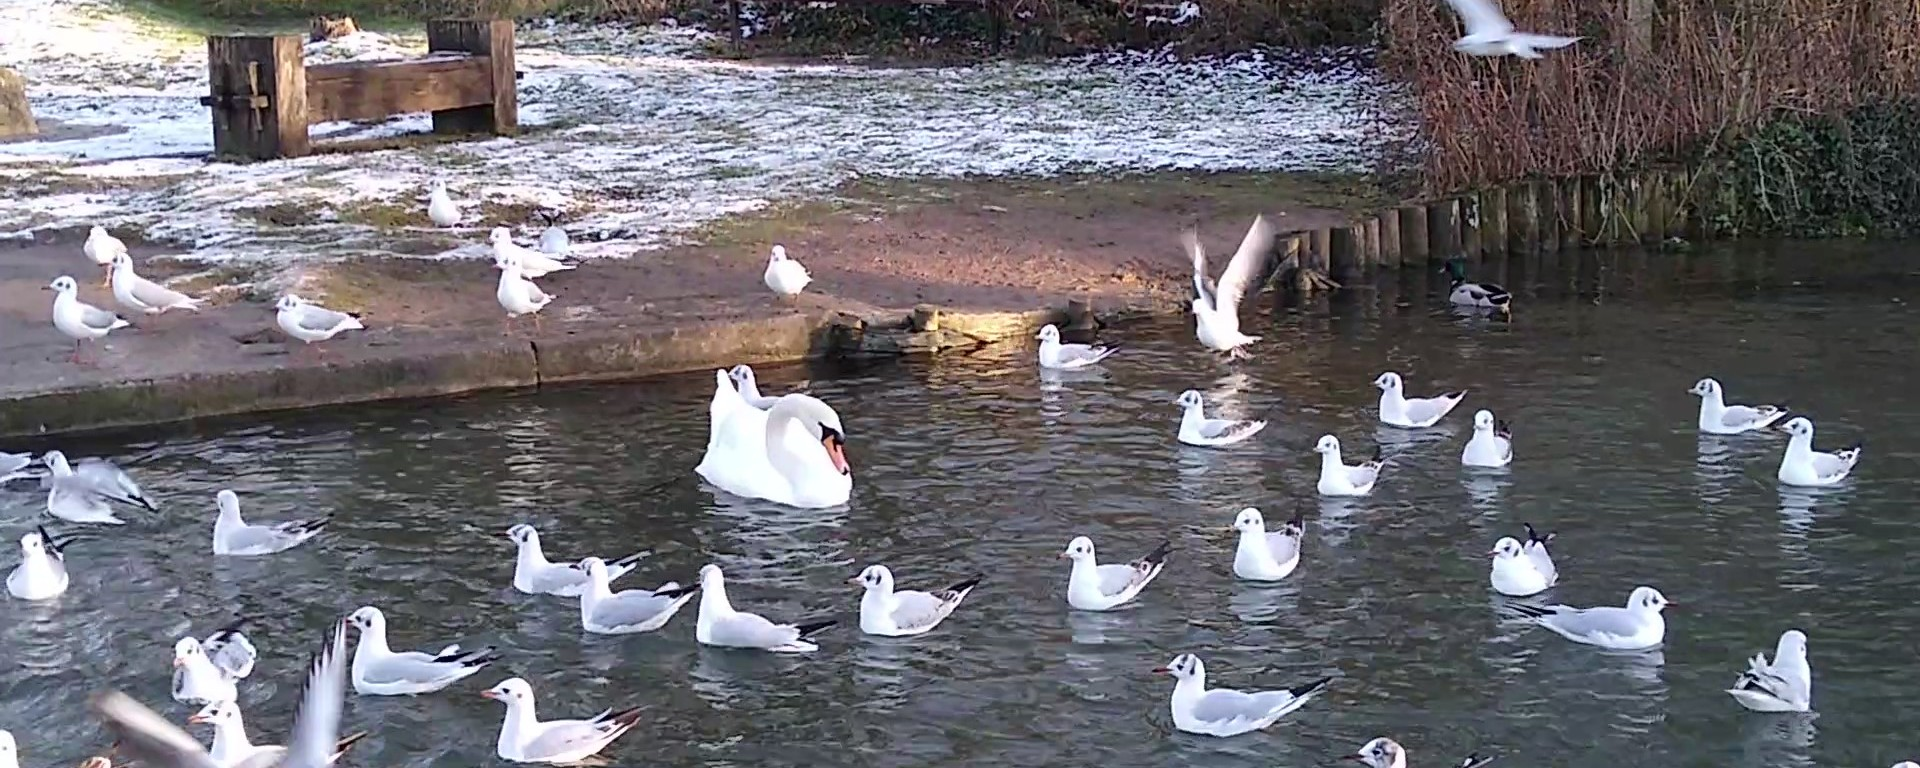 Black-headed gulls and a mute swan swimming on a lake at Cherry Hinton Hall